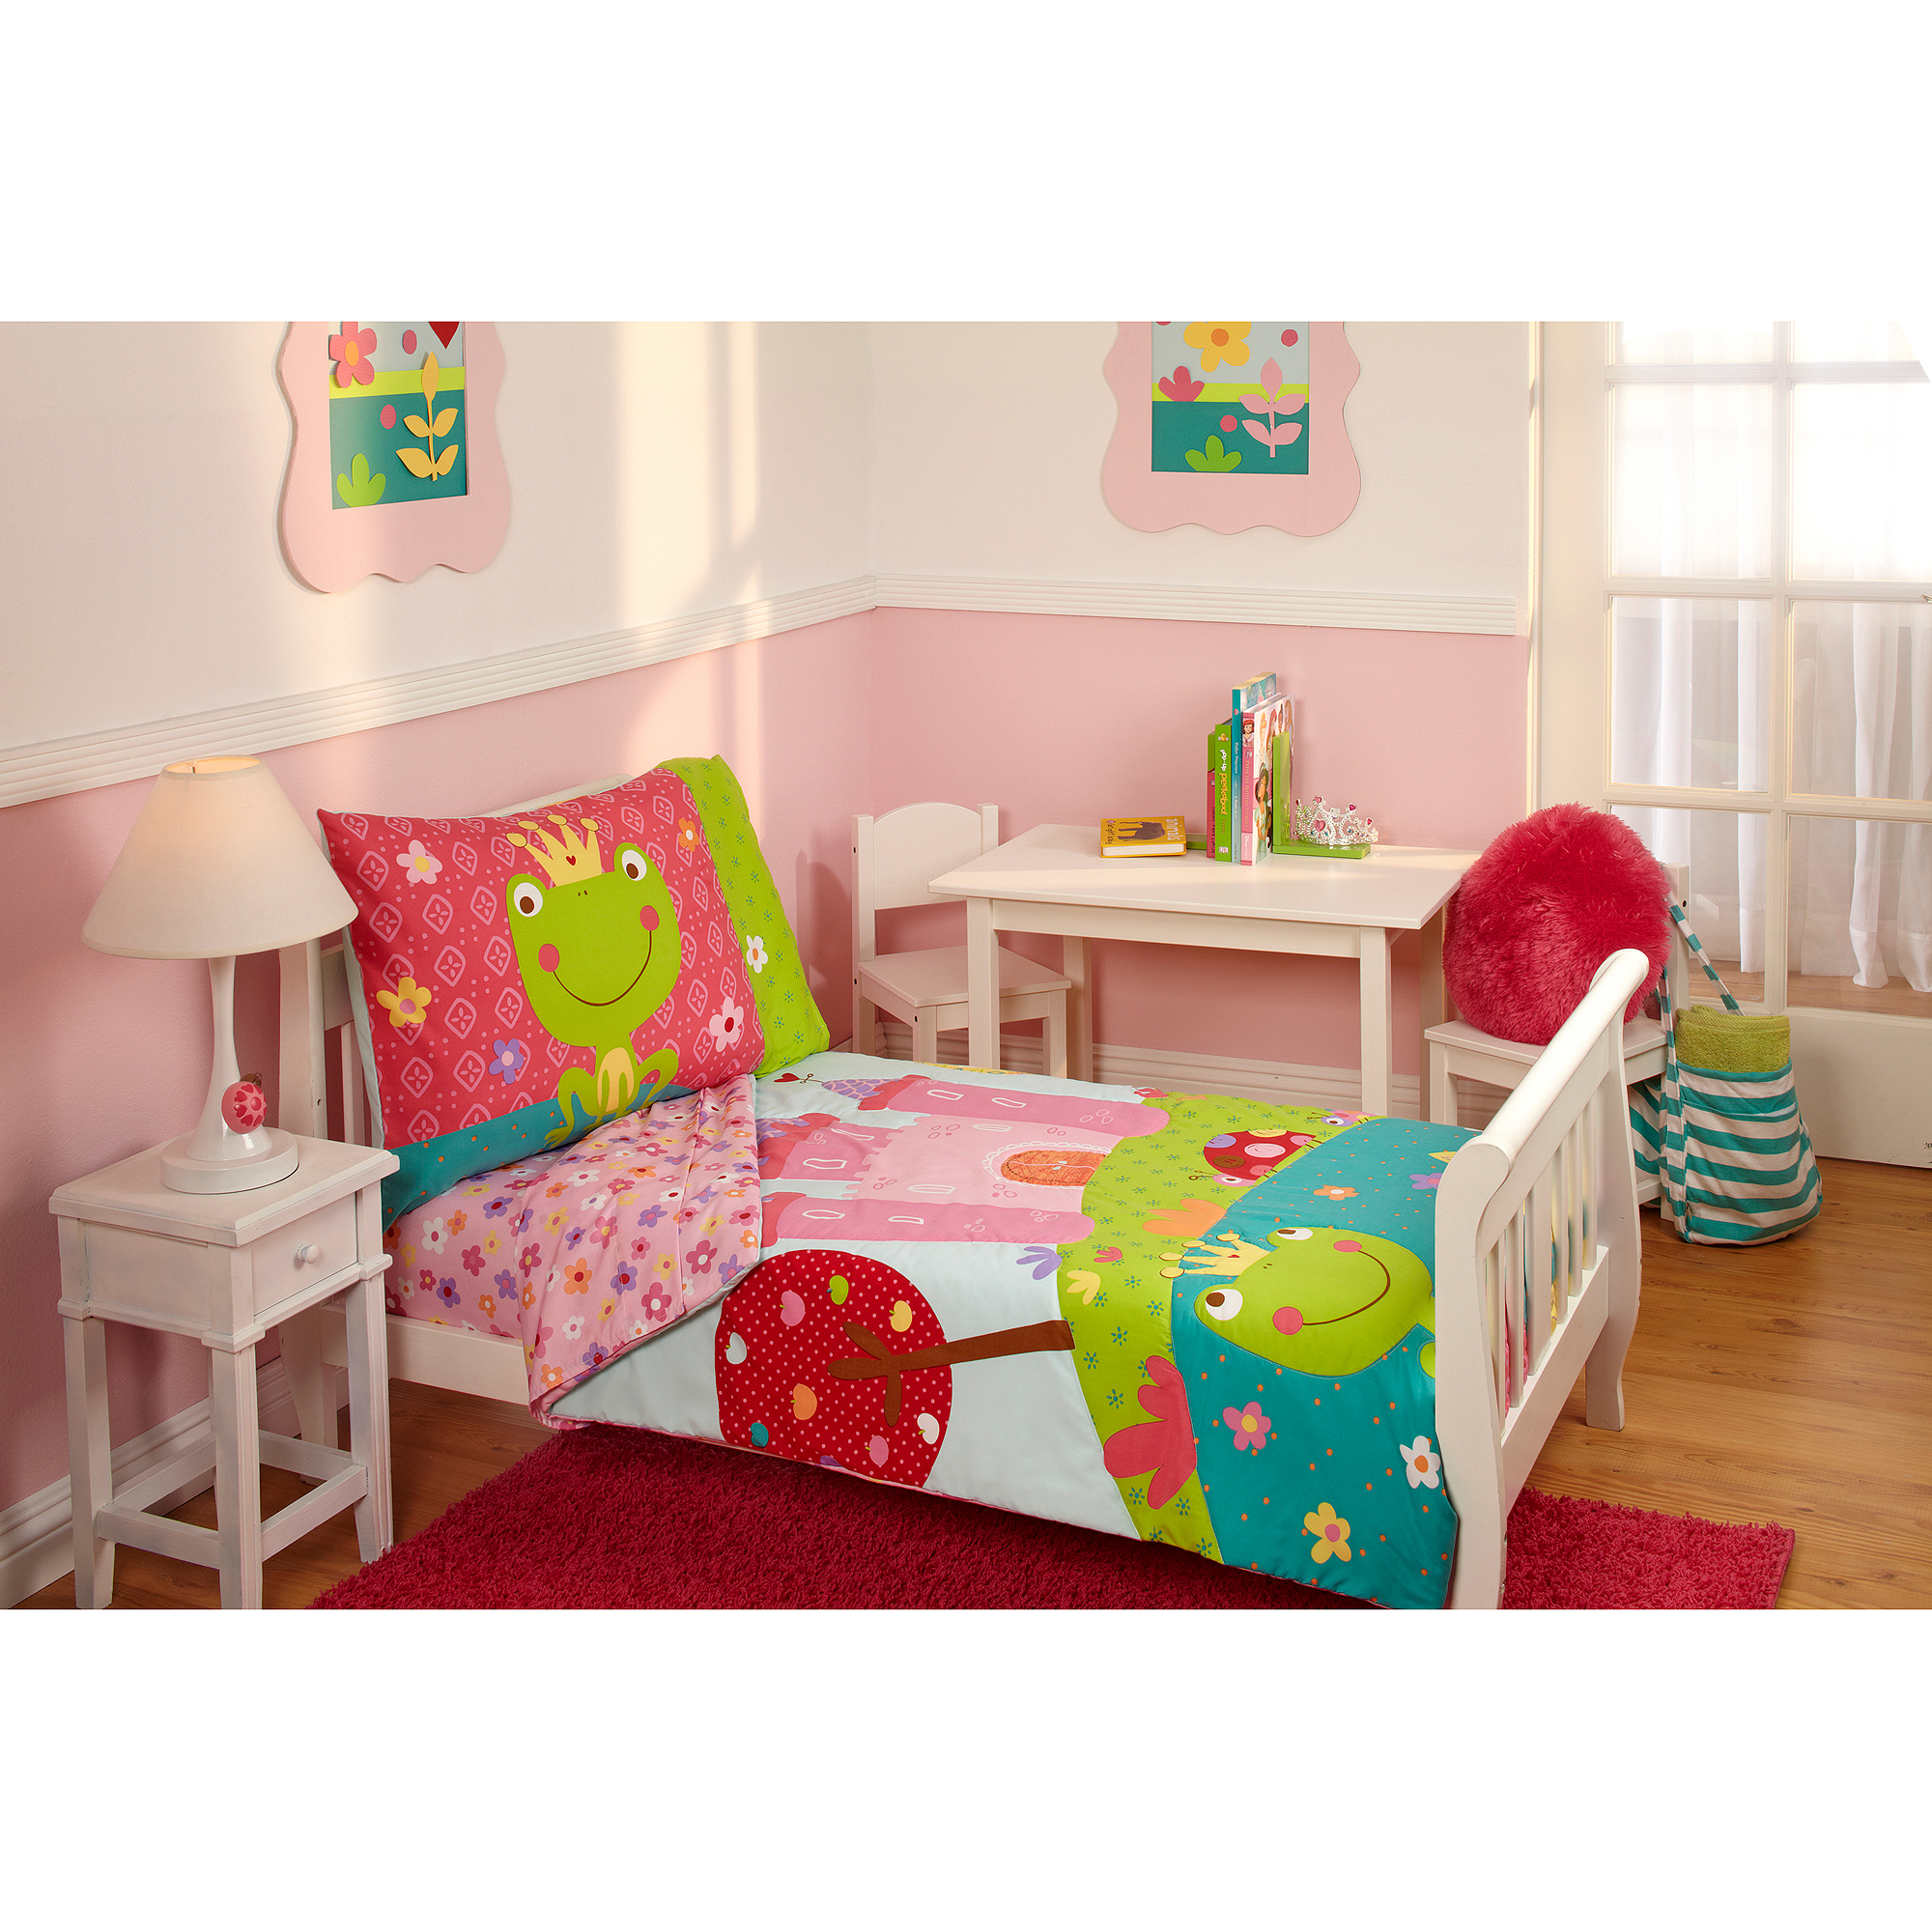 Everything Kids Fairytale 3 Piece Toddler Bedding Set With BONUS Matching  Pillow Case   Walmart.com